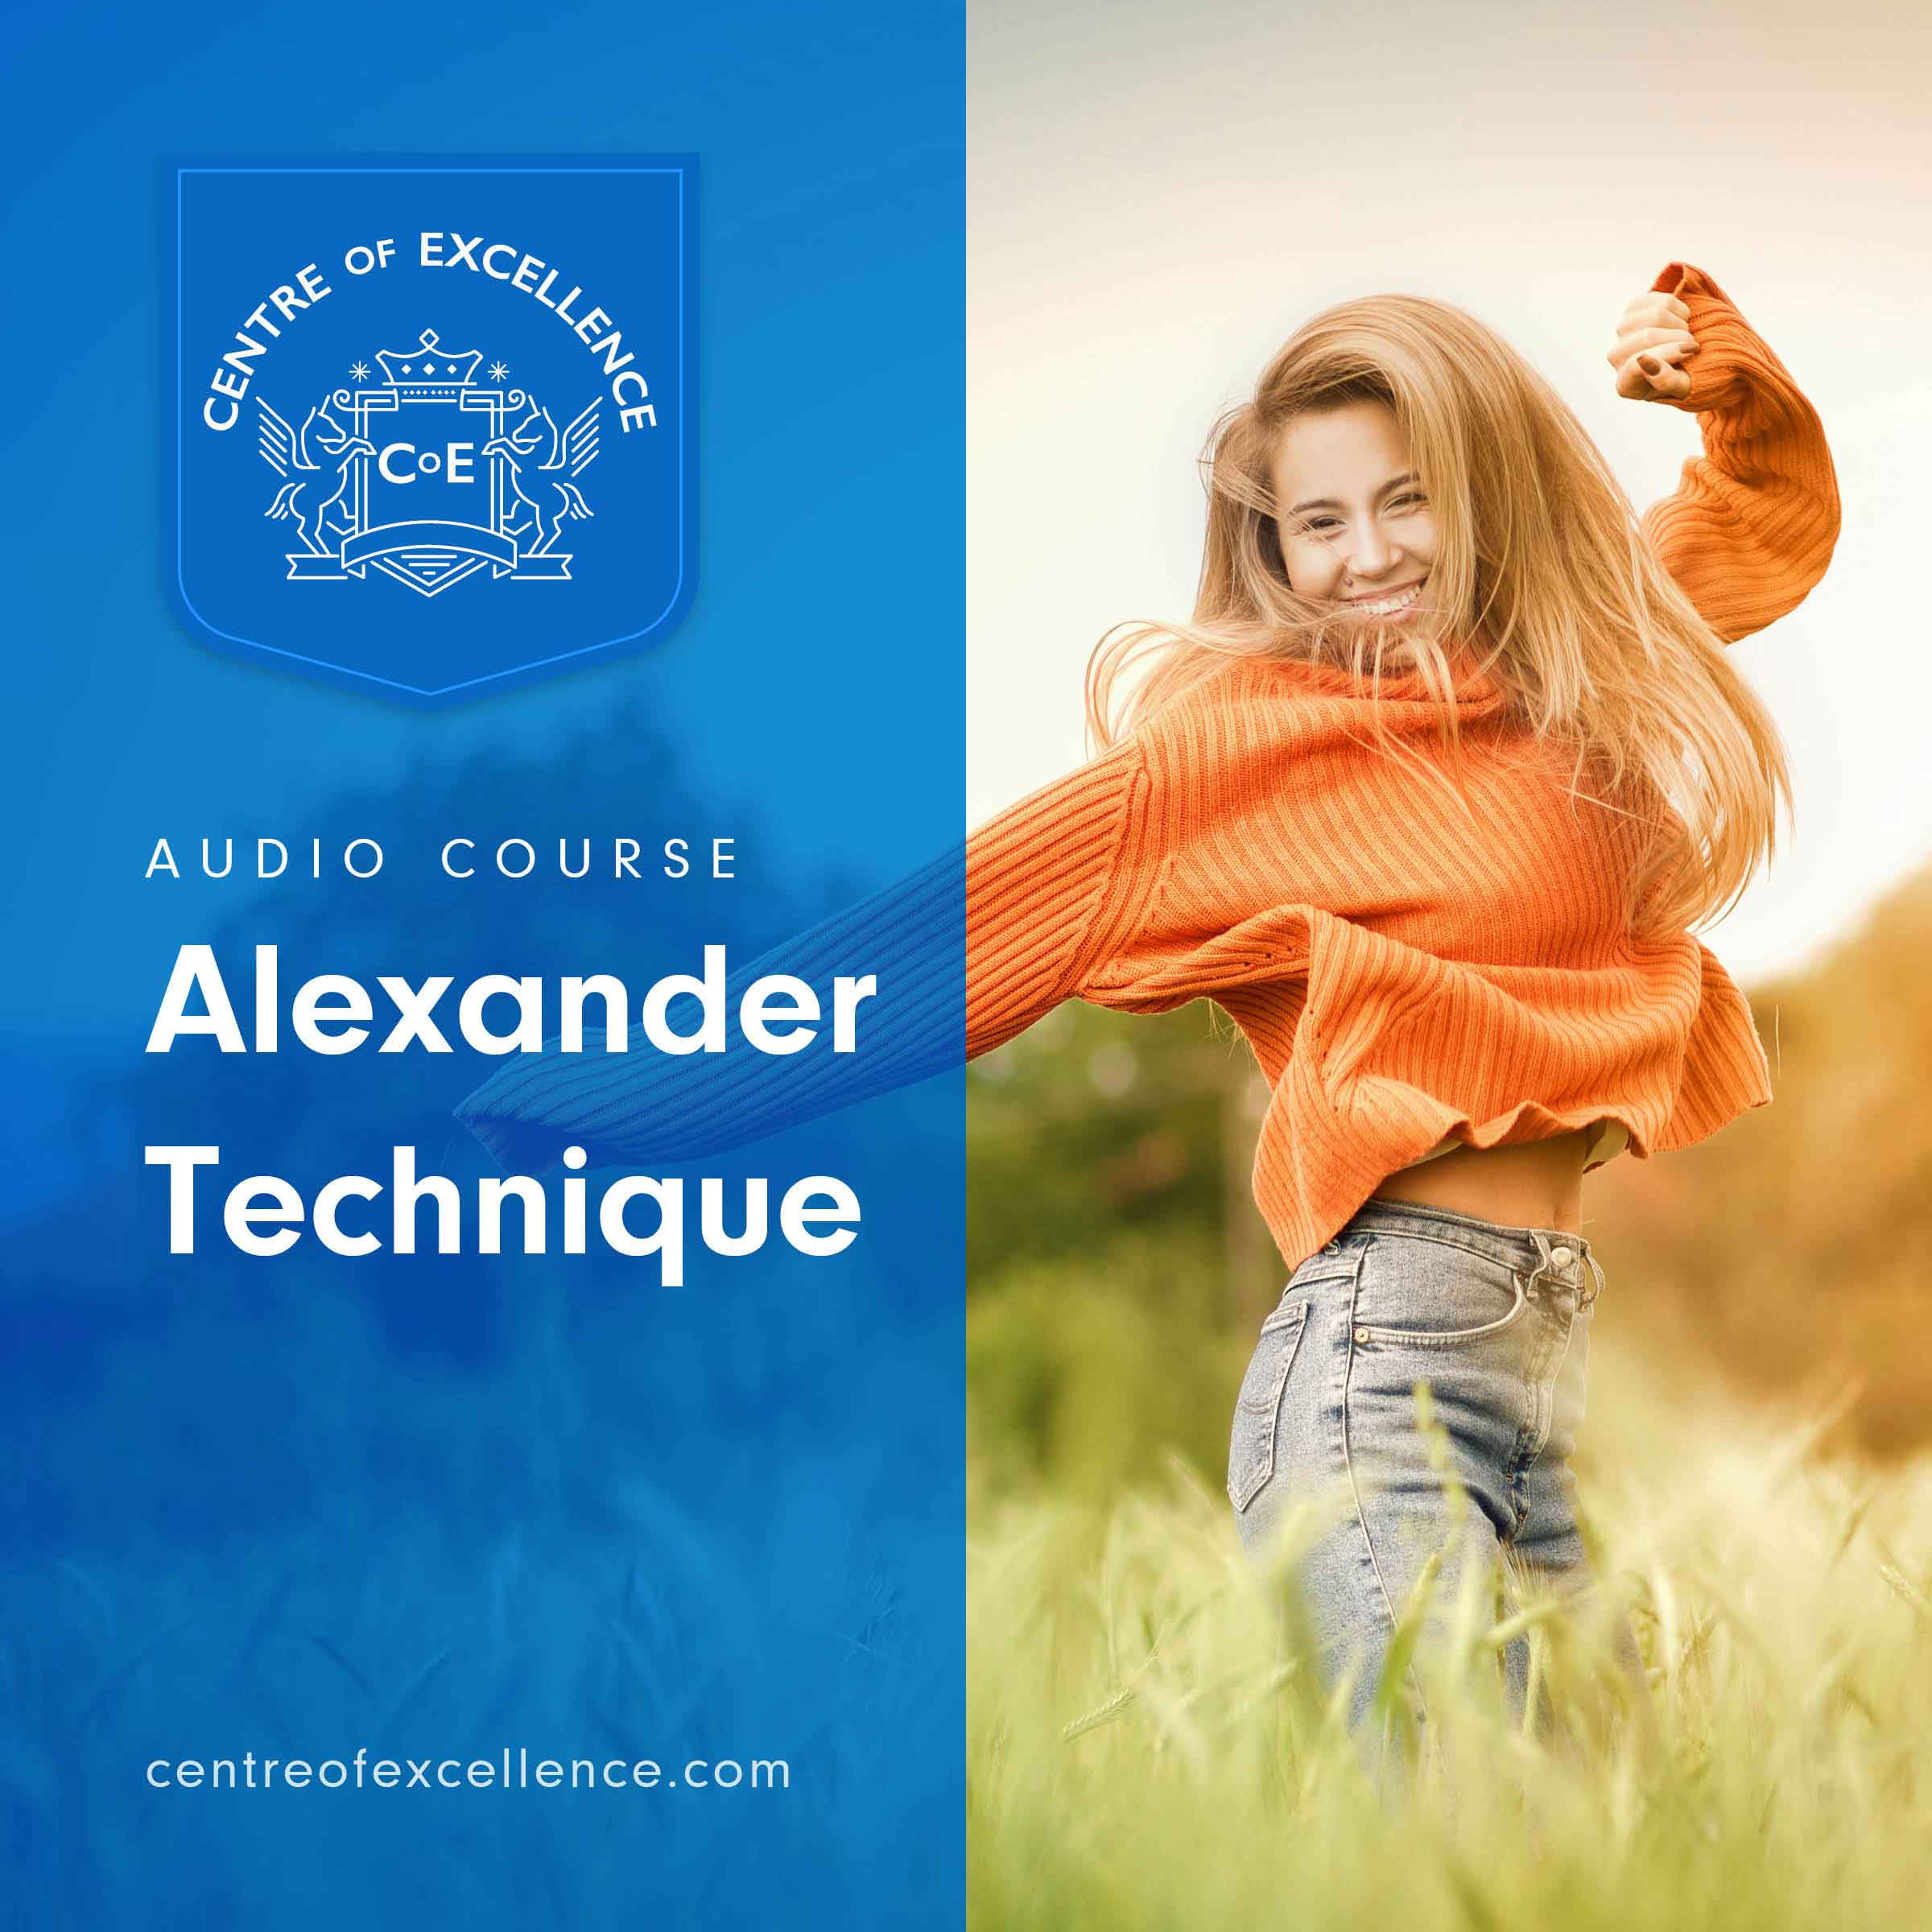 Alexander Technique Audio Course